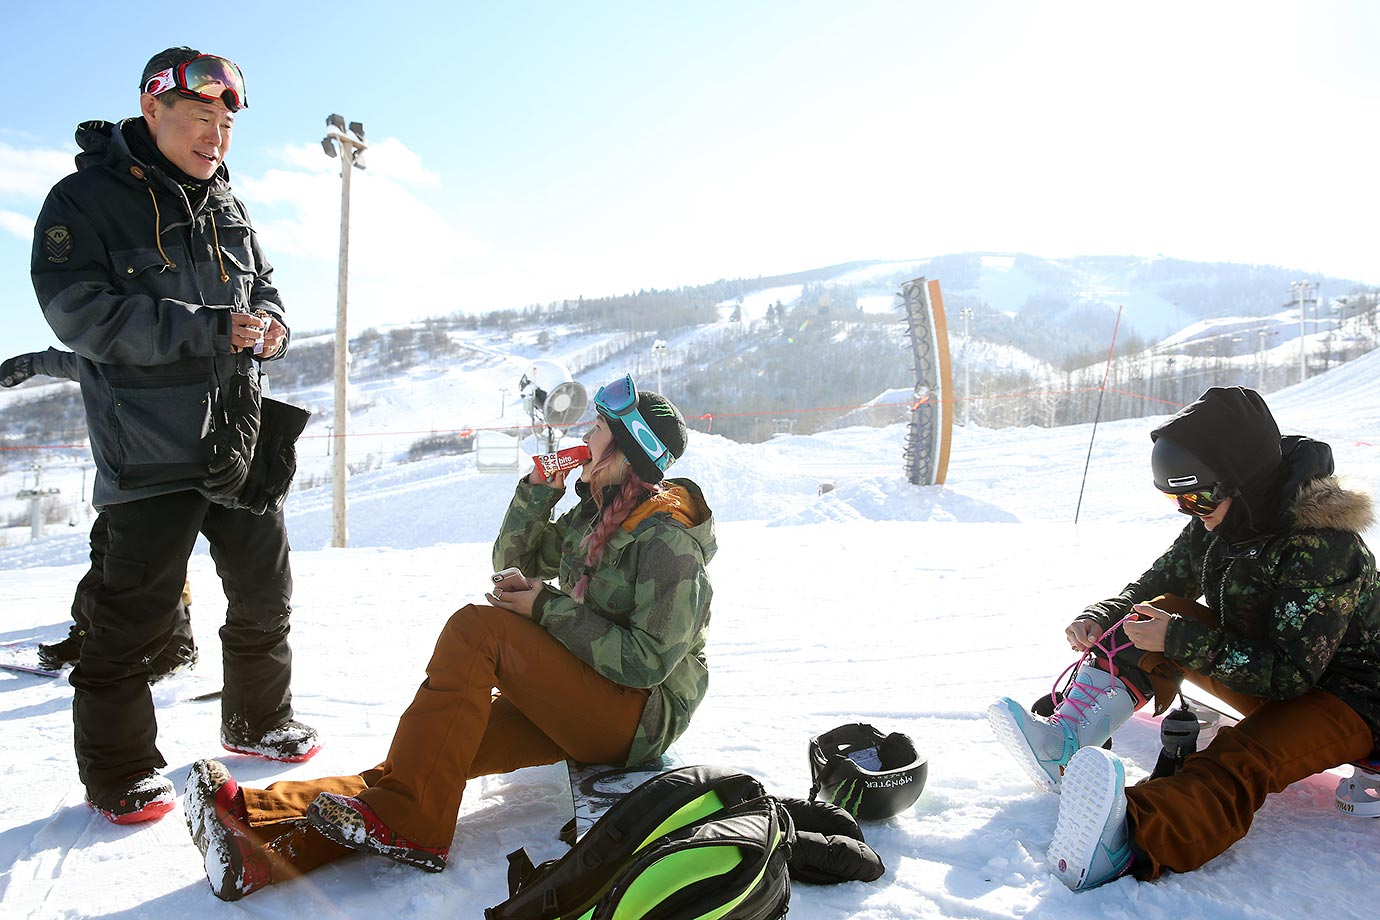 Chloe Kim grabs a snack and talks with her father Jong Jim Kim on top of the mountain.